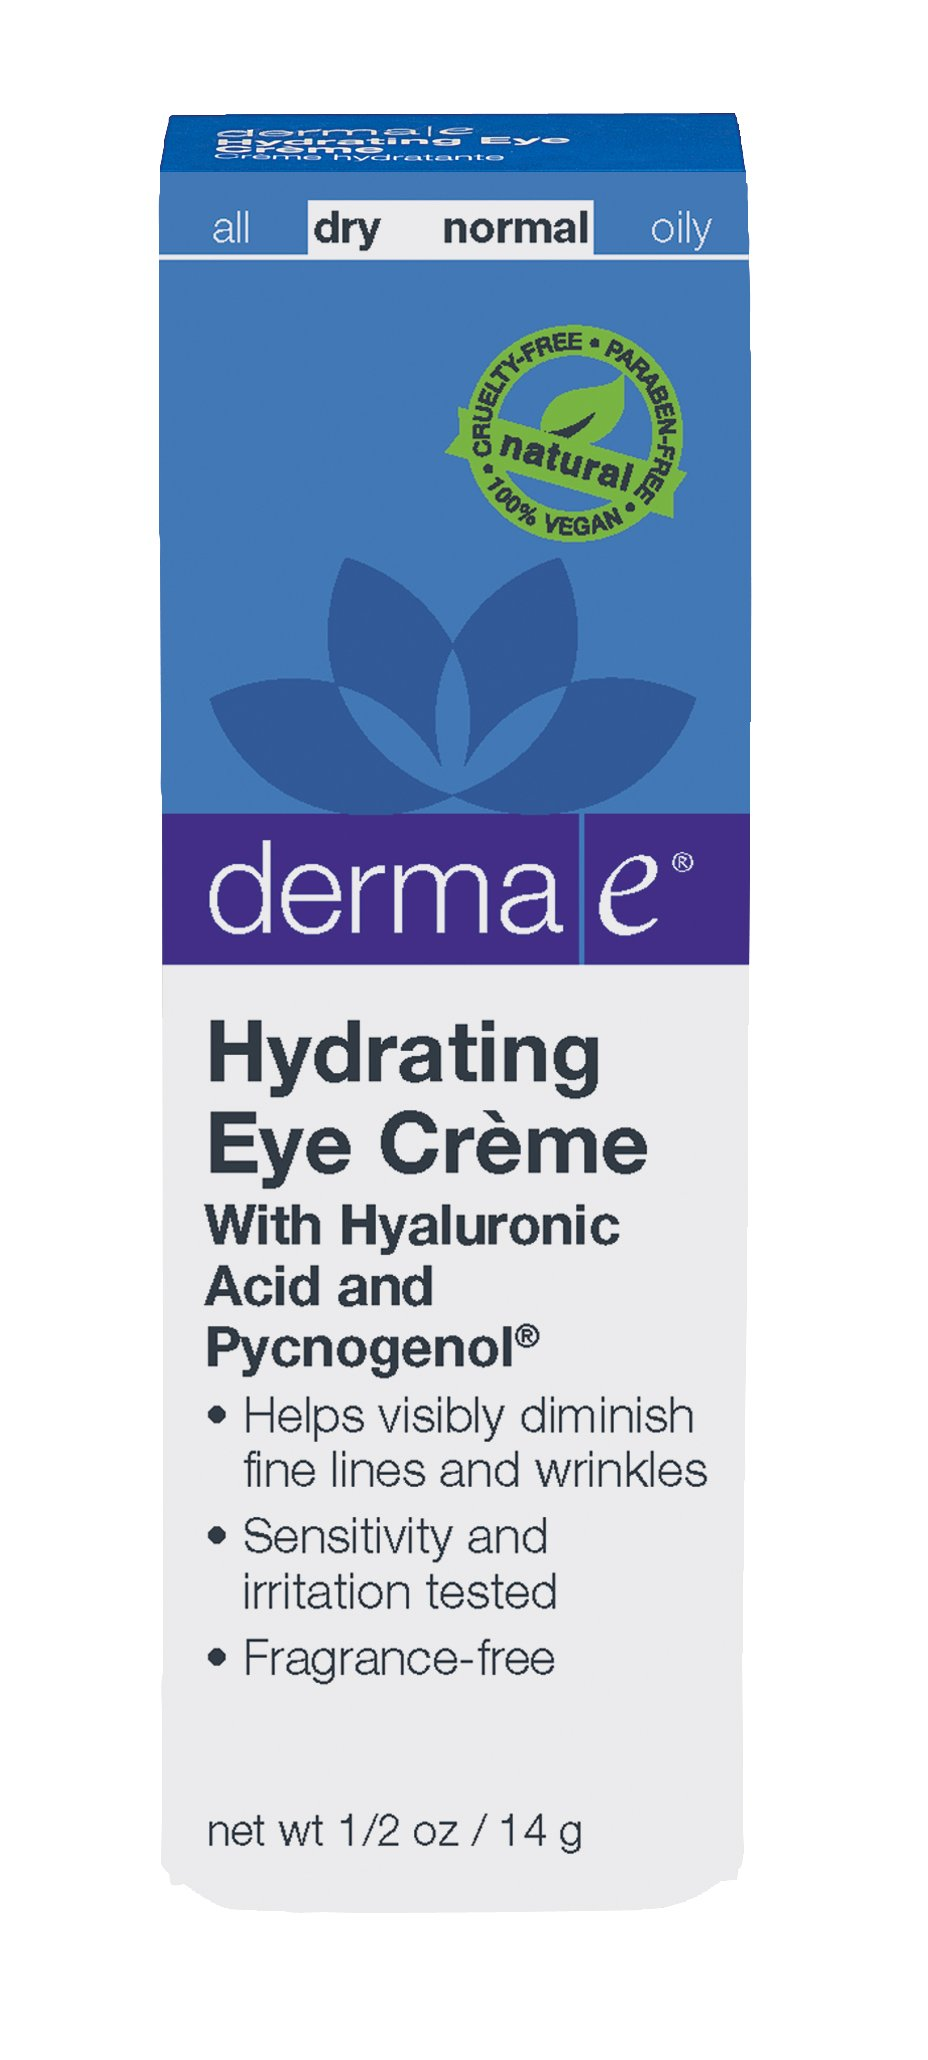 DERMA E Hydrating Eye Crme with Hyaluronic Acid and Pycnogenol 1/2 oz by DERMA-E (Image #3)